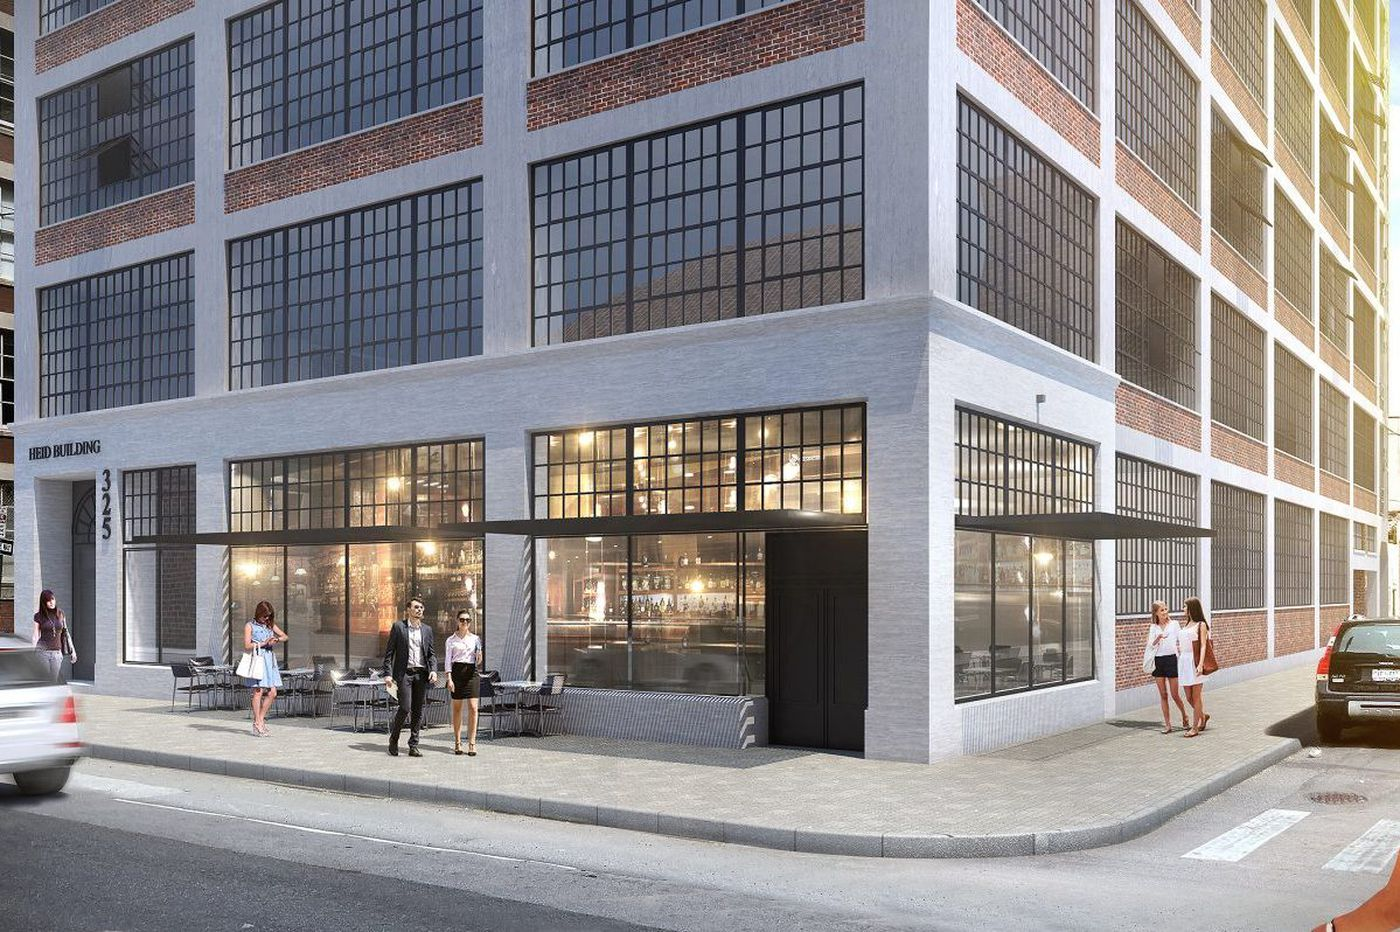 Hospitality venture Sonder expands in Philly, leasing whole